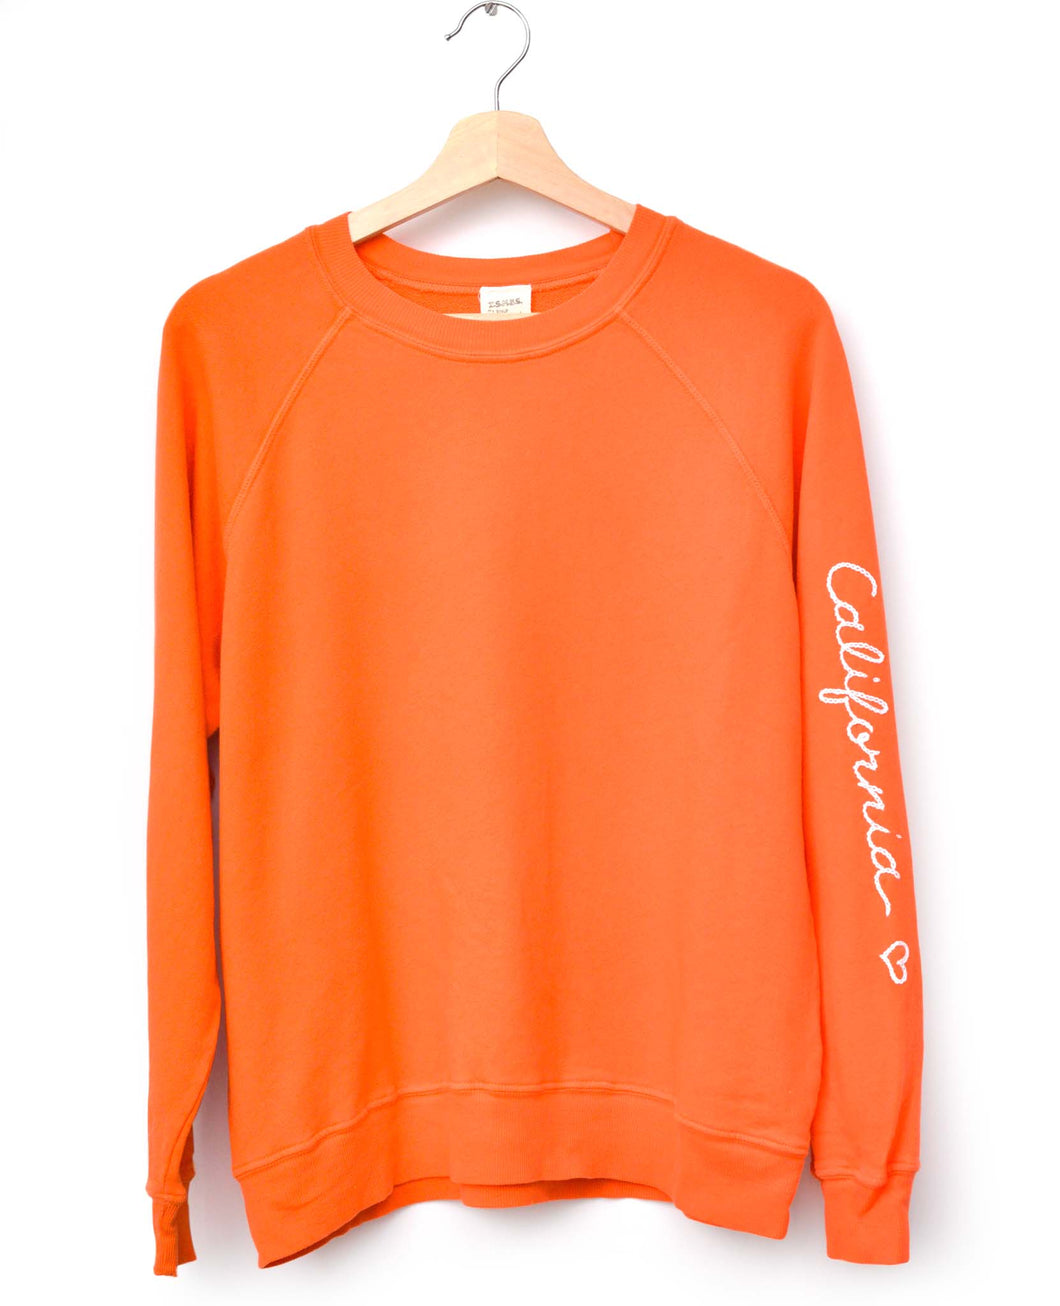 NEON ORANGE L/S SWEATS WITH CUSTOM HAND EMBROIDERY ON SLEEVE